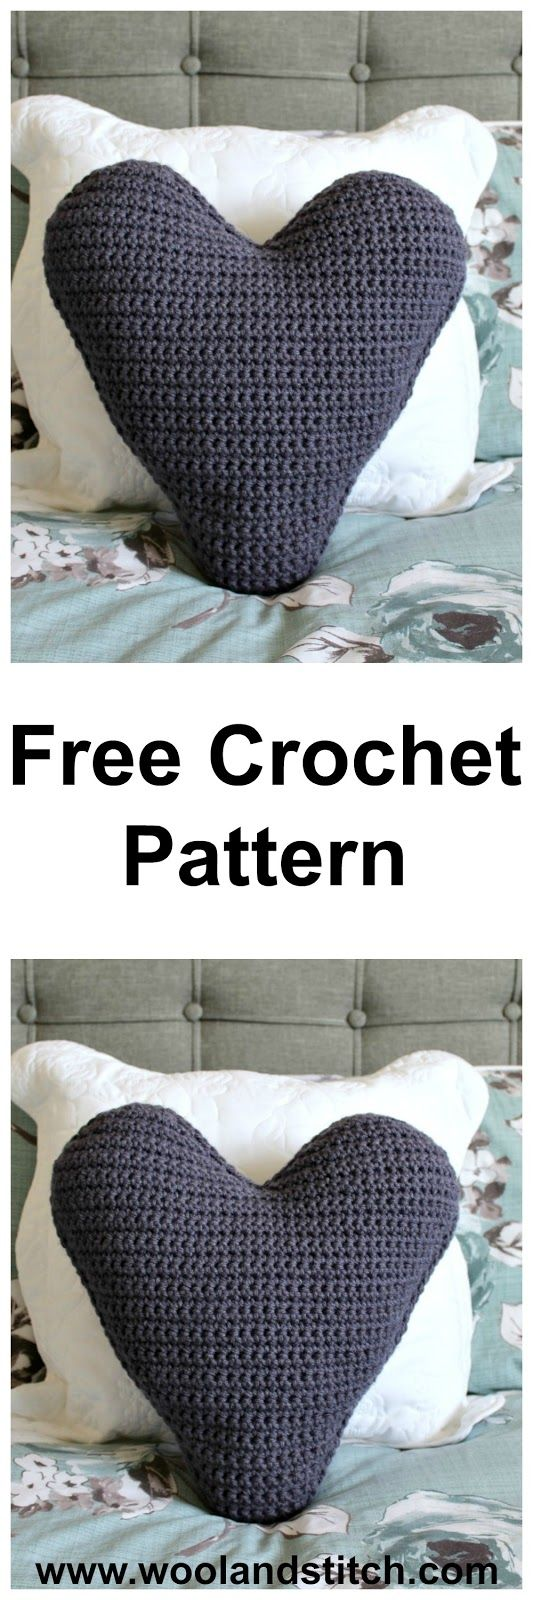 Chunky Heart Cushion - Free Crochet Pattern